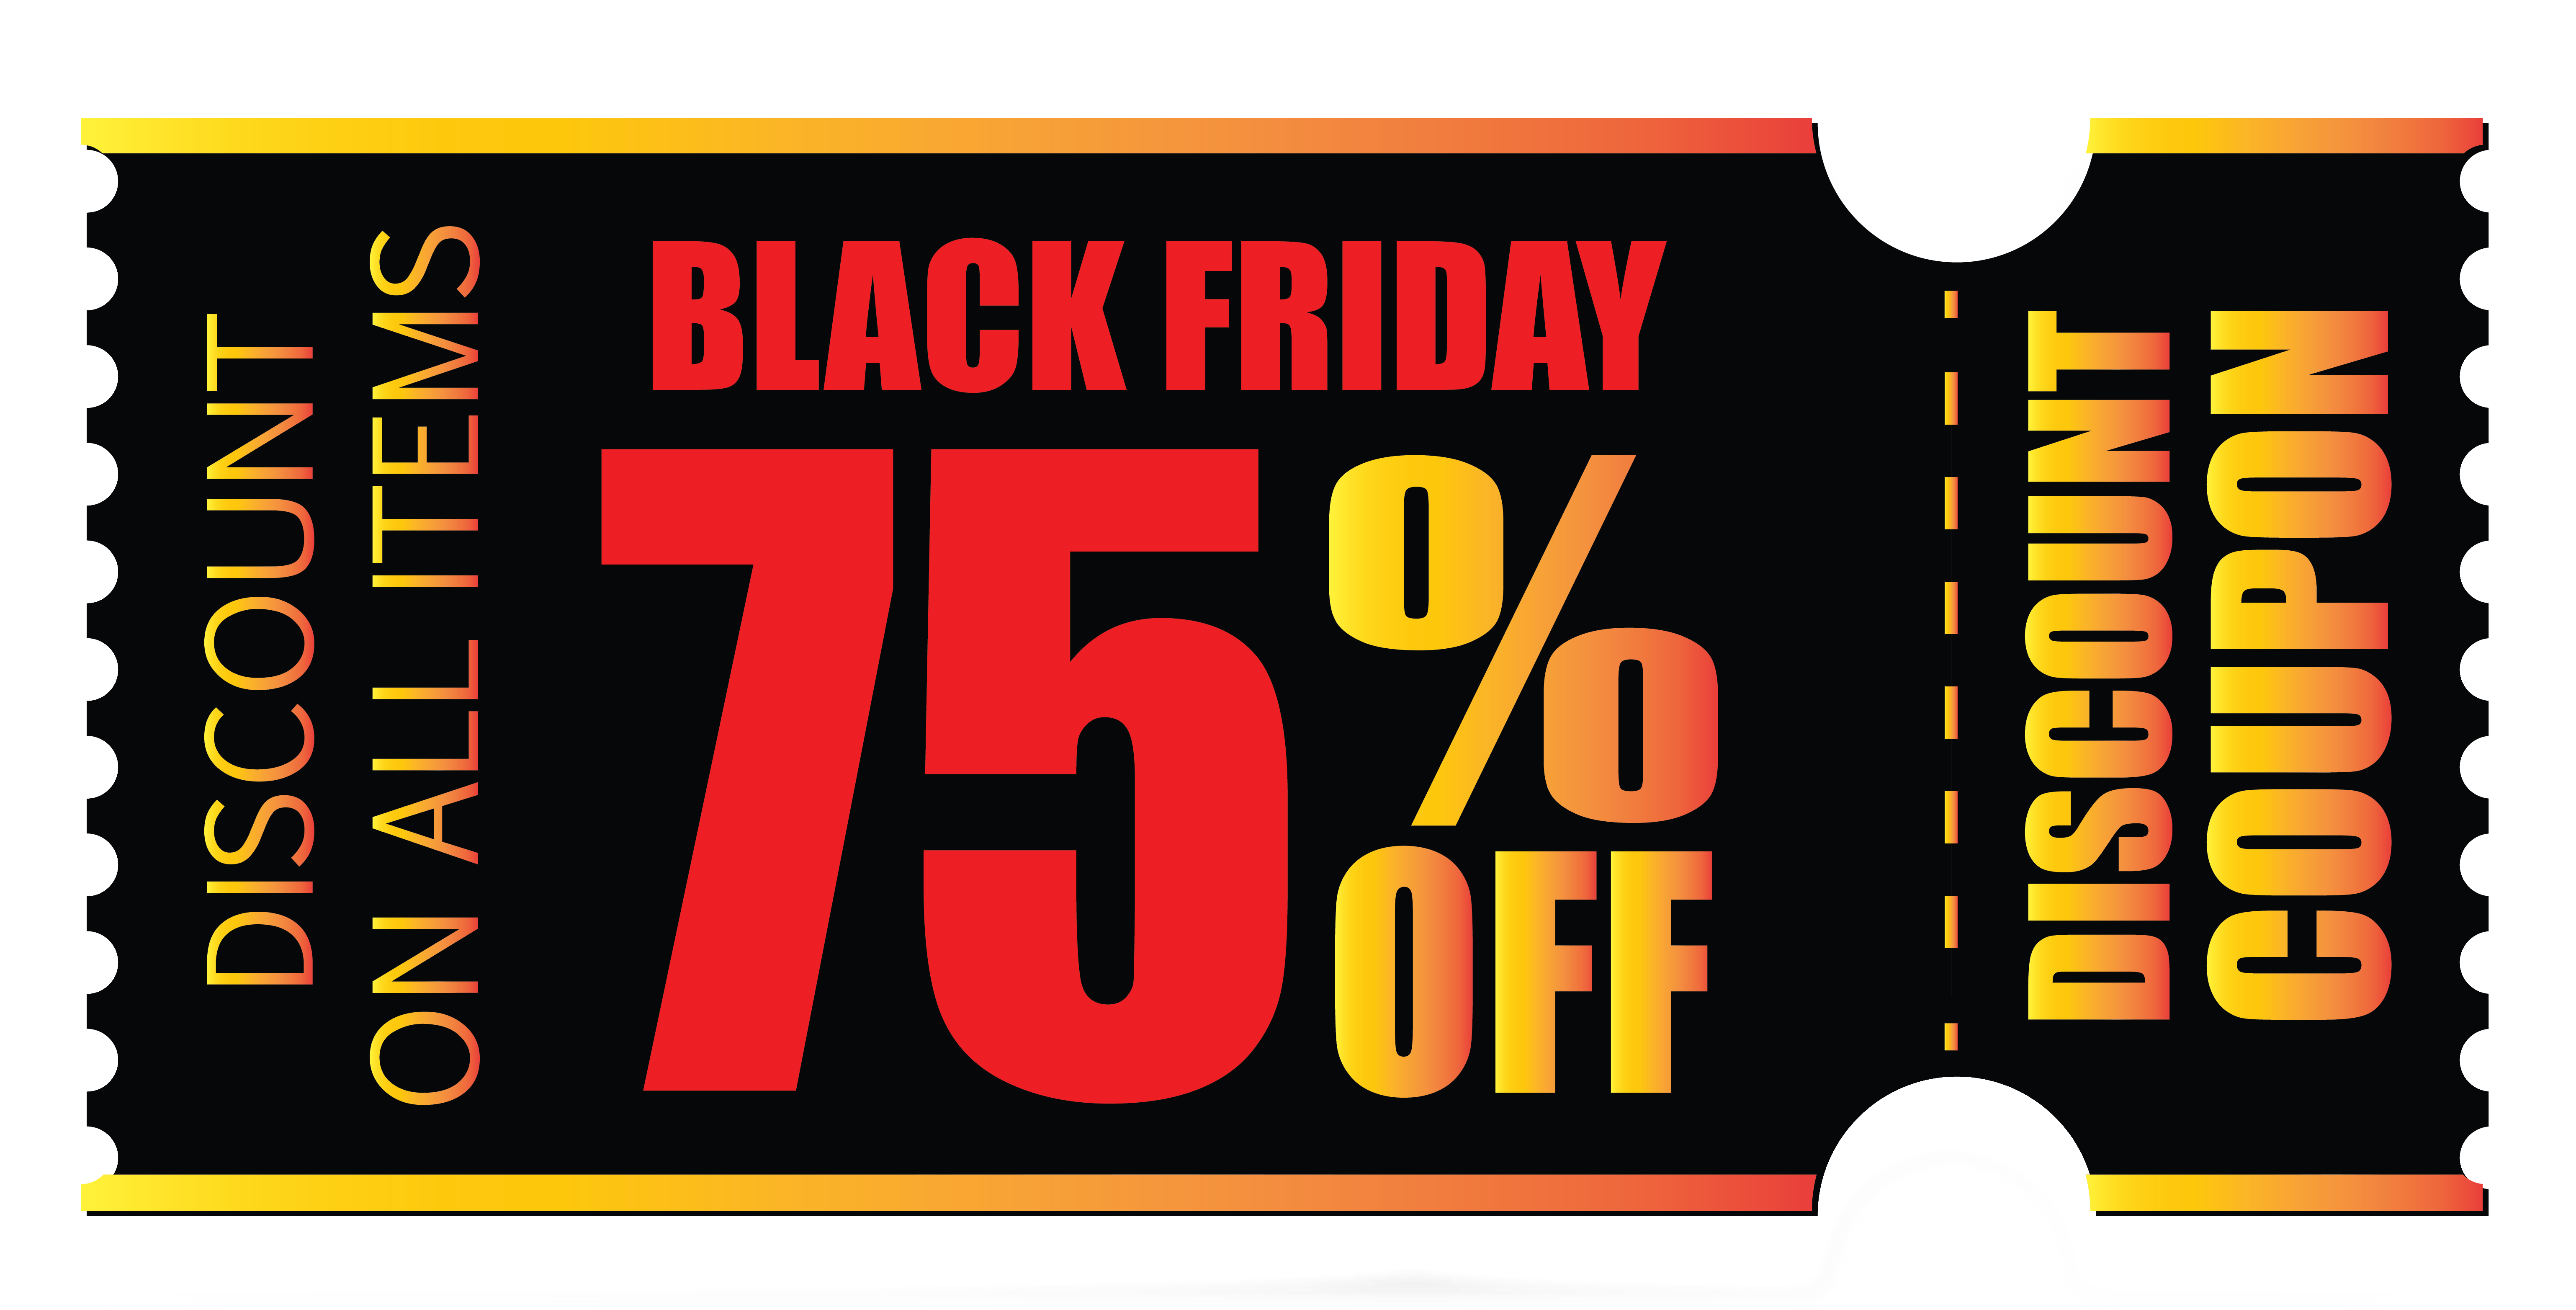 Red coupon png. Black friday clipart image